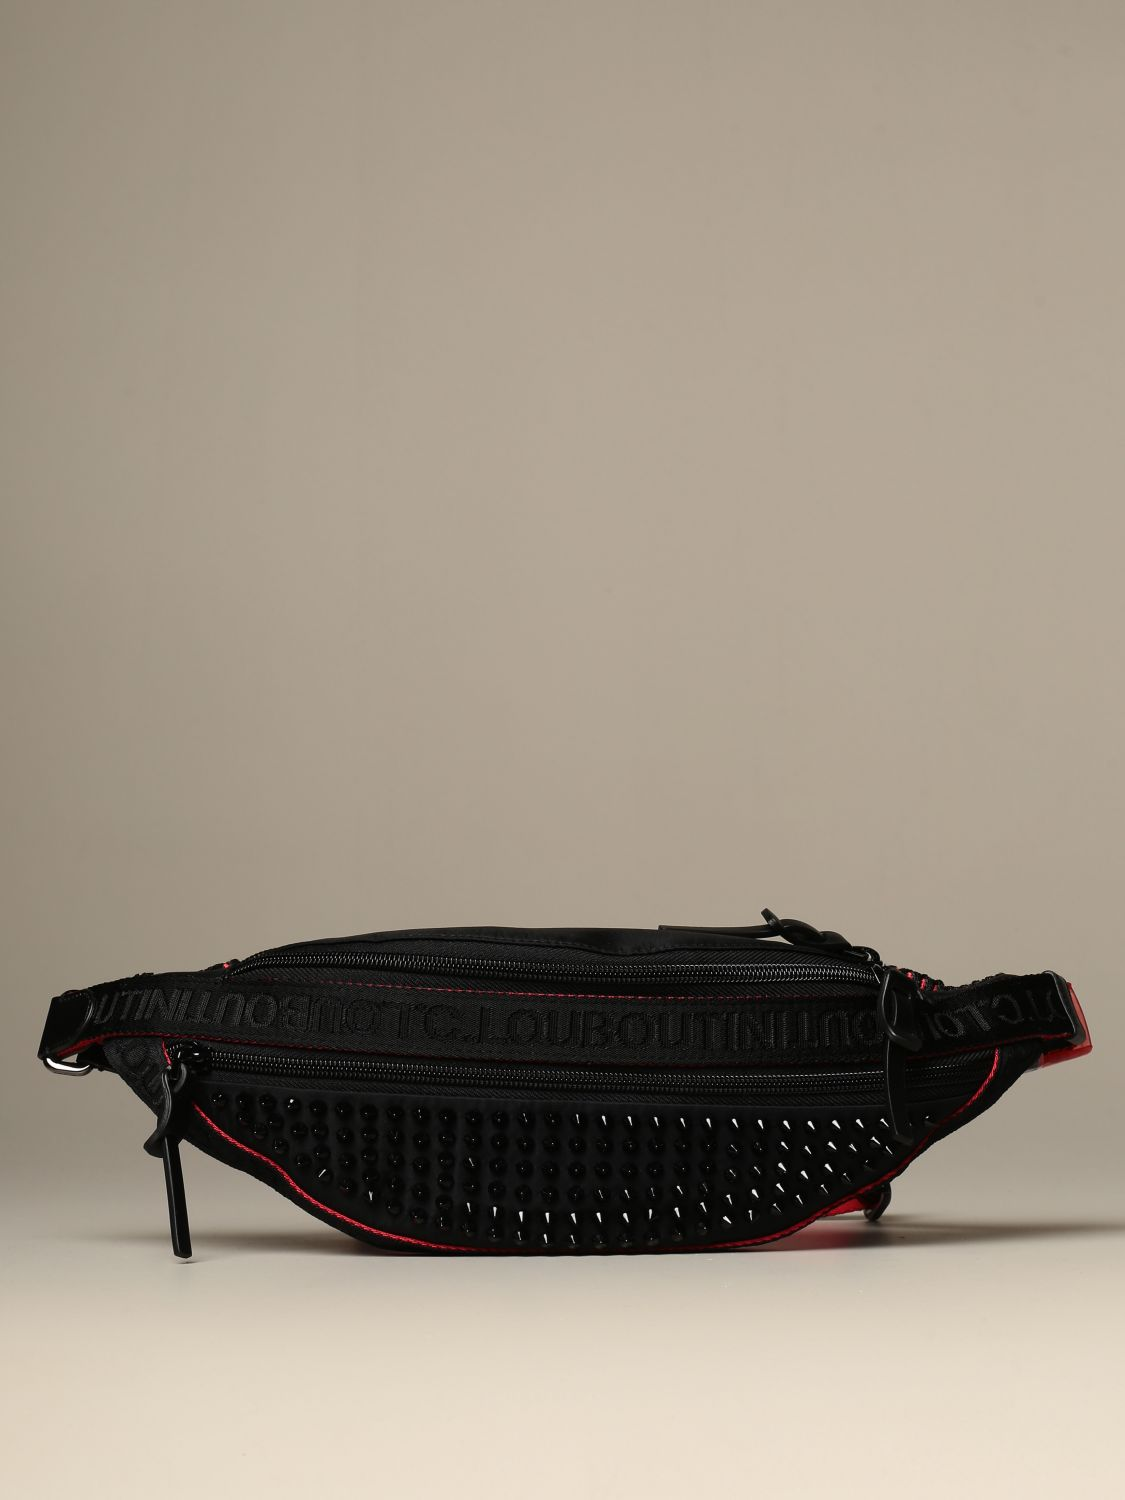 Belt bag Christian Louboutin: Parisnyc Christian Louboutin pouch in nylon with studs black 1